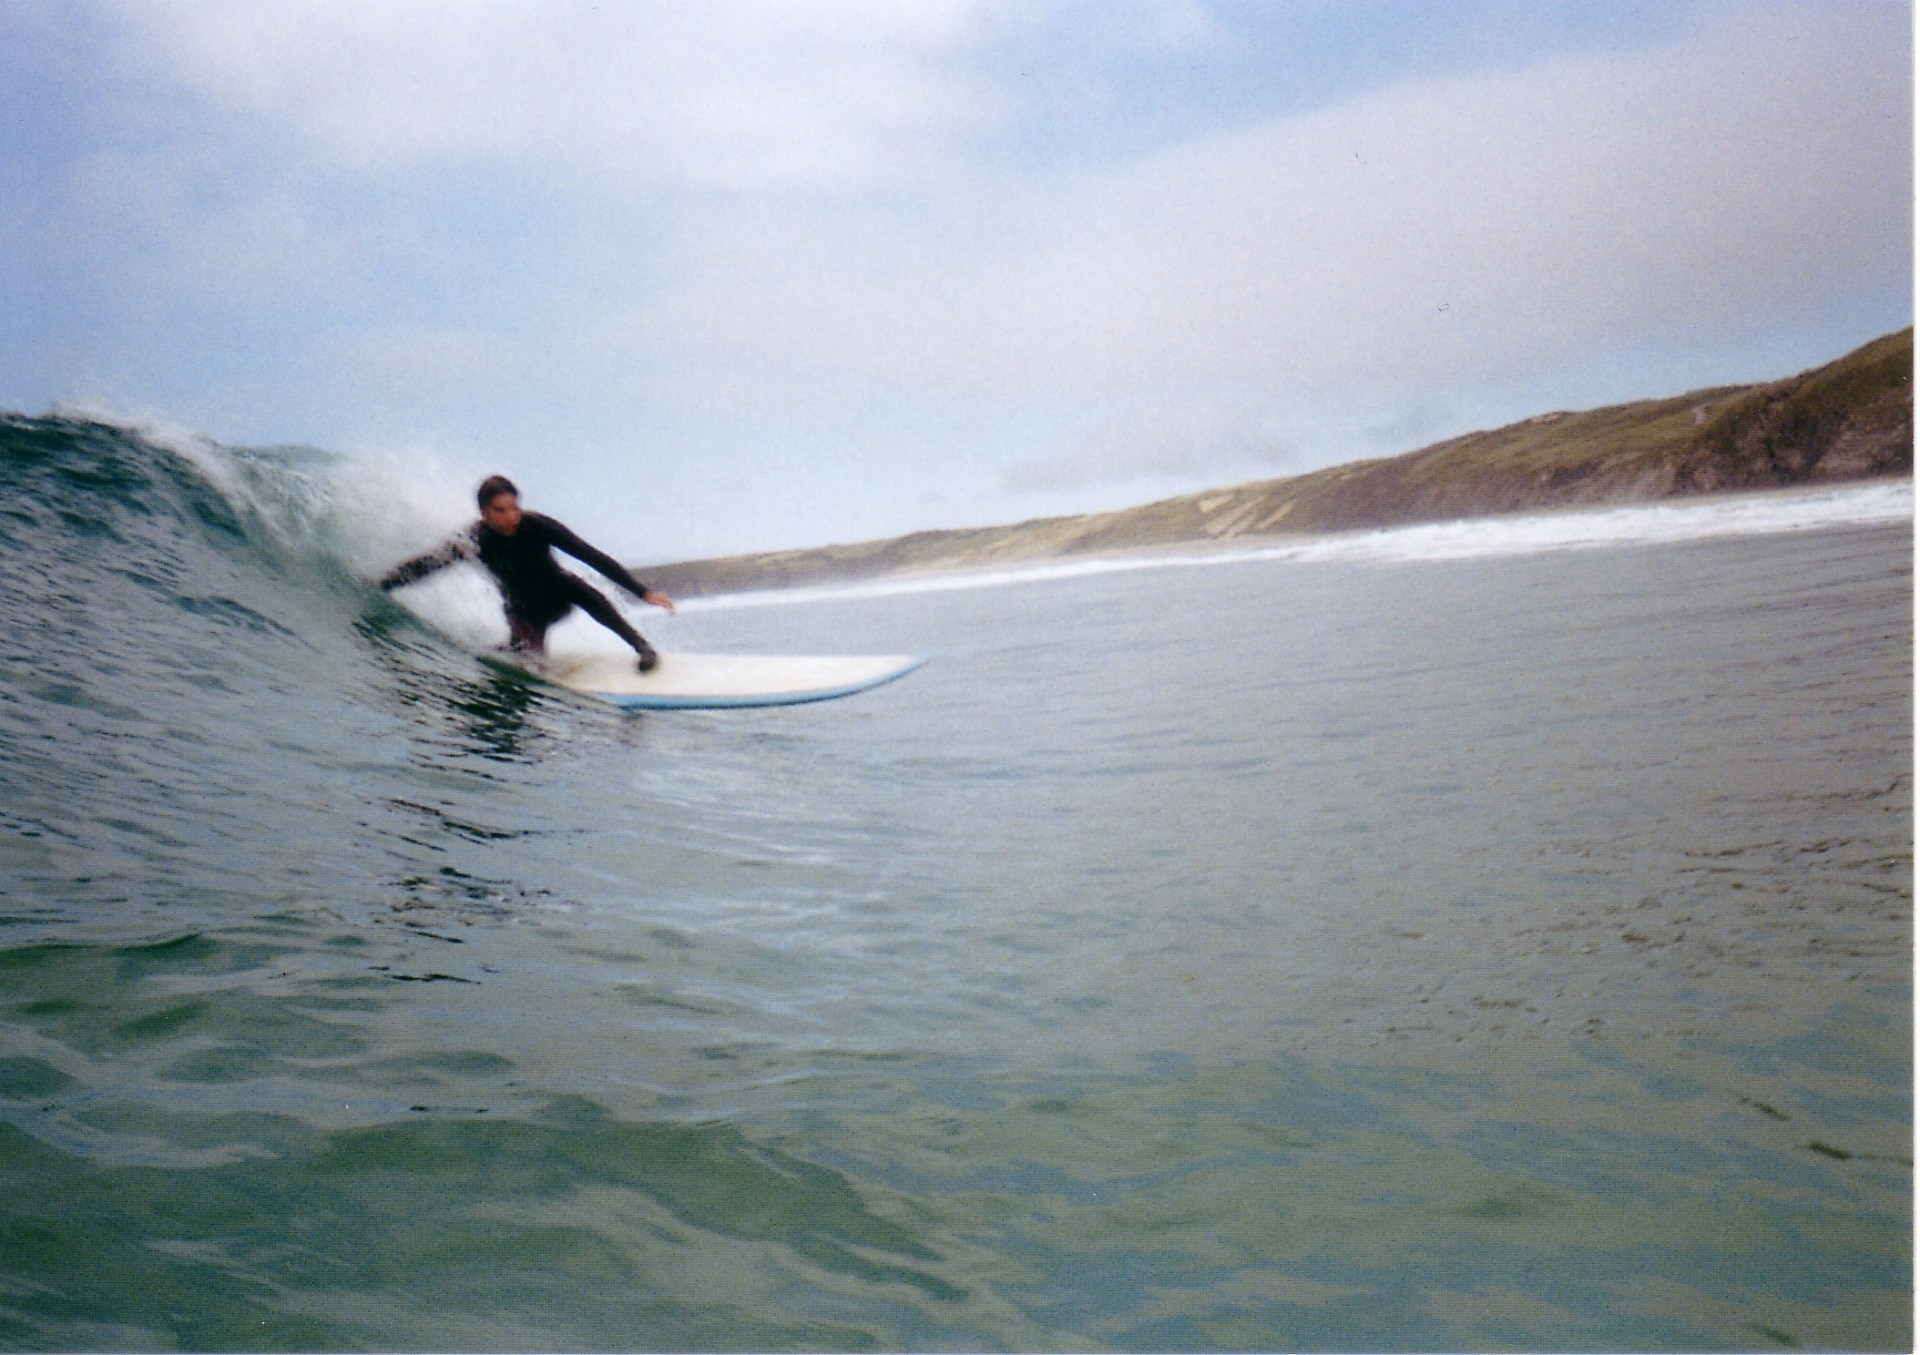 A surfer on a wave. He's crouching, touching the wave with his hand as the wave breaks. The wave is chest high, blue-green color. There are brown-green hills in the background on the land.